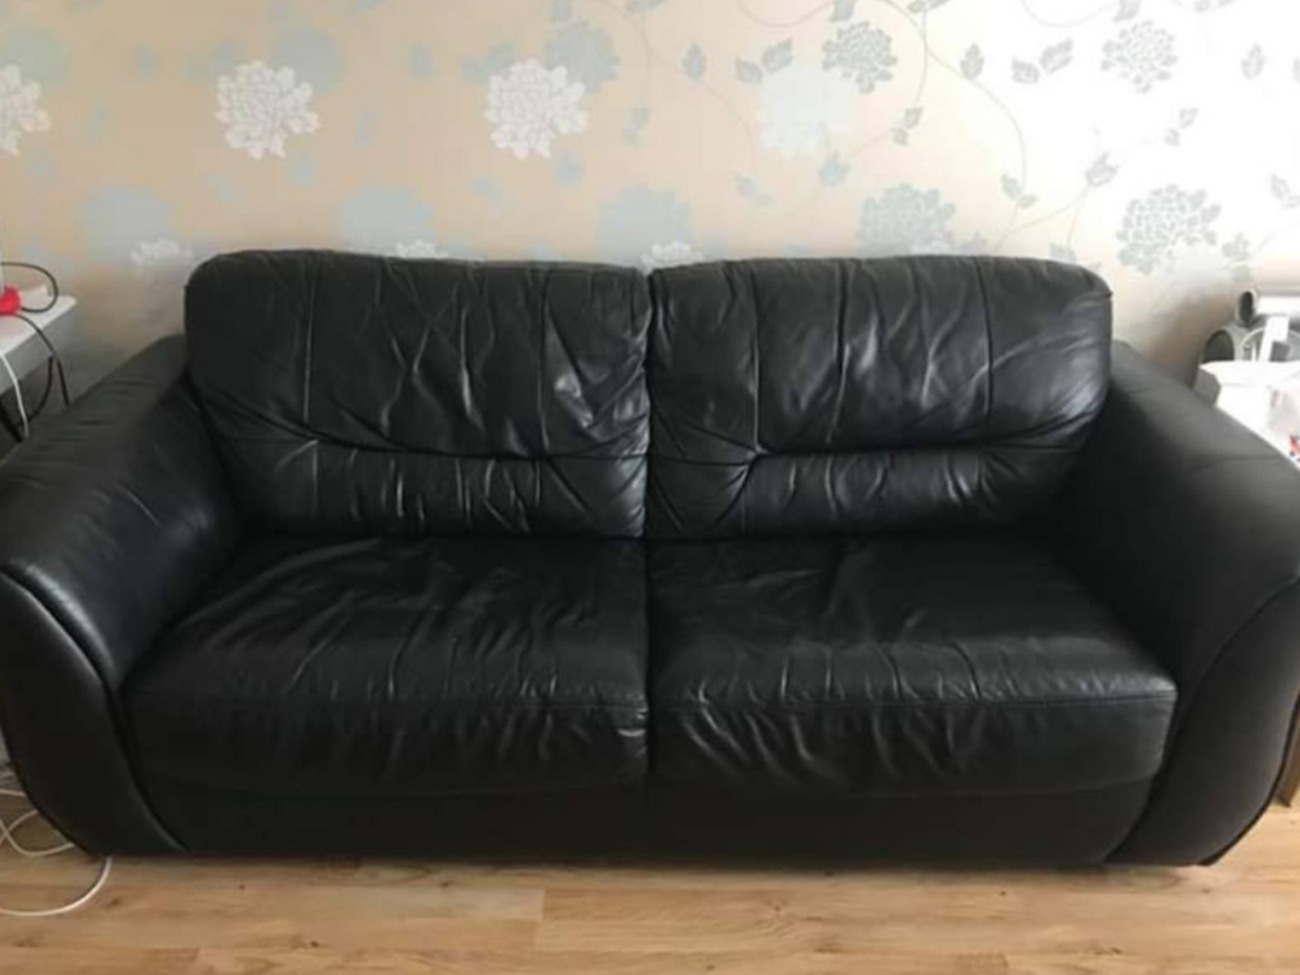 Picture of: Rent Dfs Sofabed Genuine Leather Black In Enfield Rent For 35 00 Day 175 00 Week 583 14 Month Fat Llama